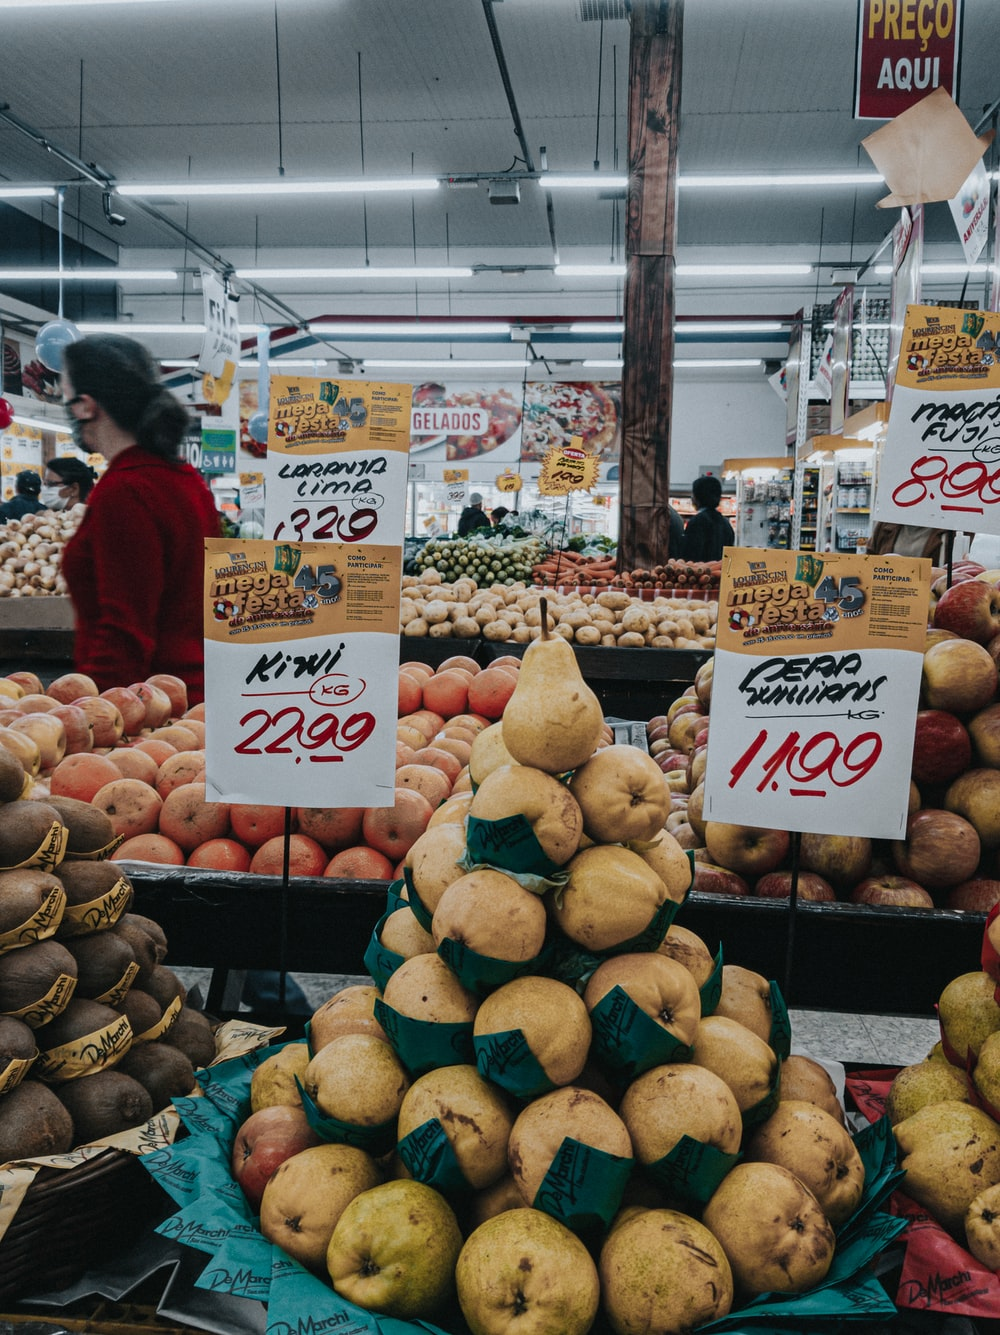 woman in red shirt standing near fruit stand